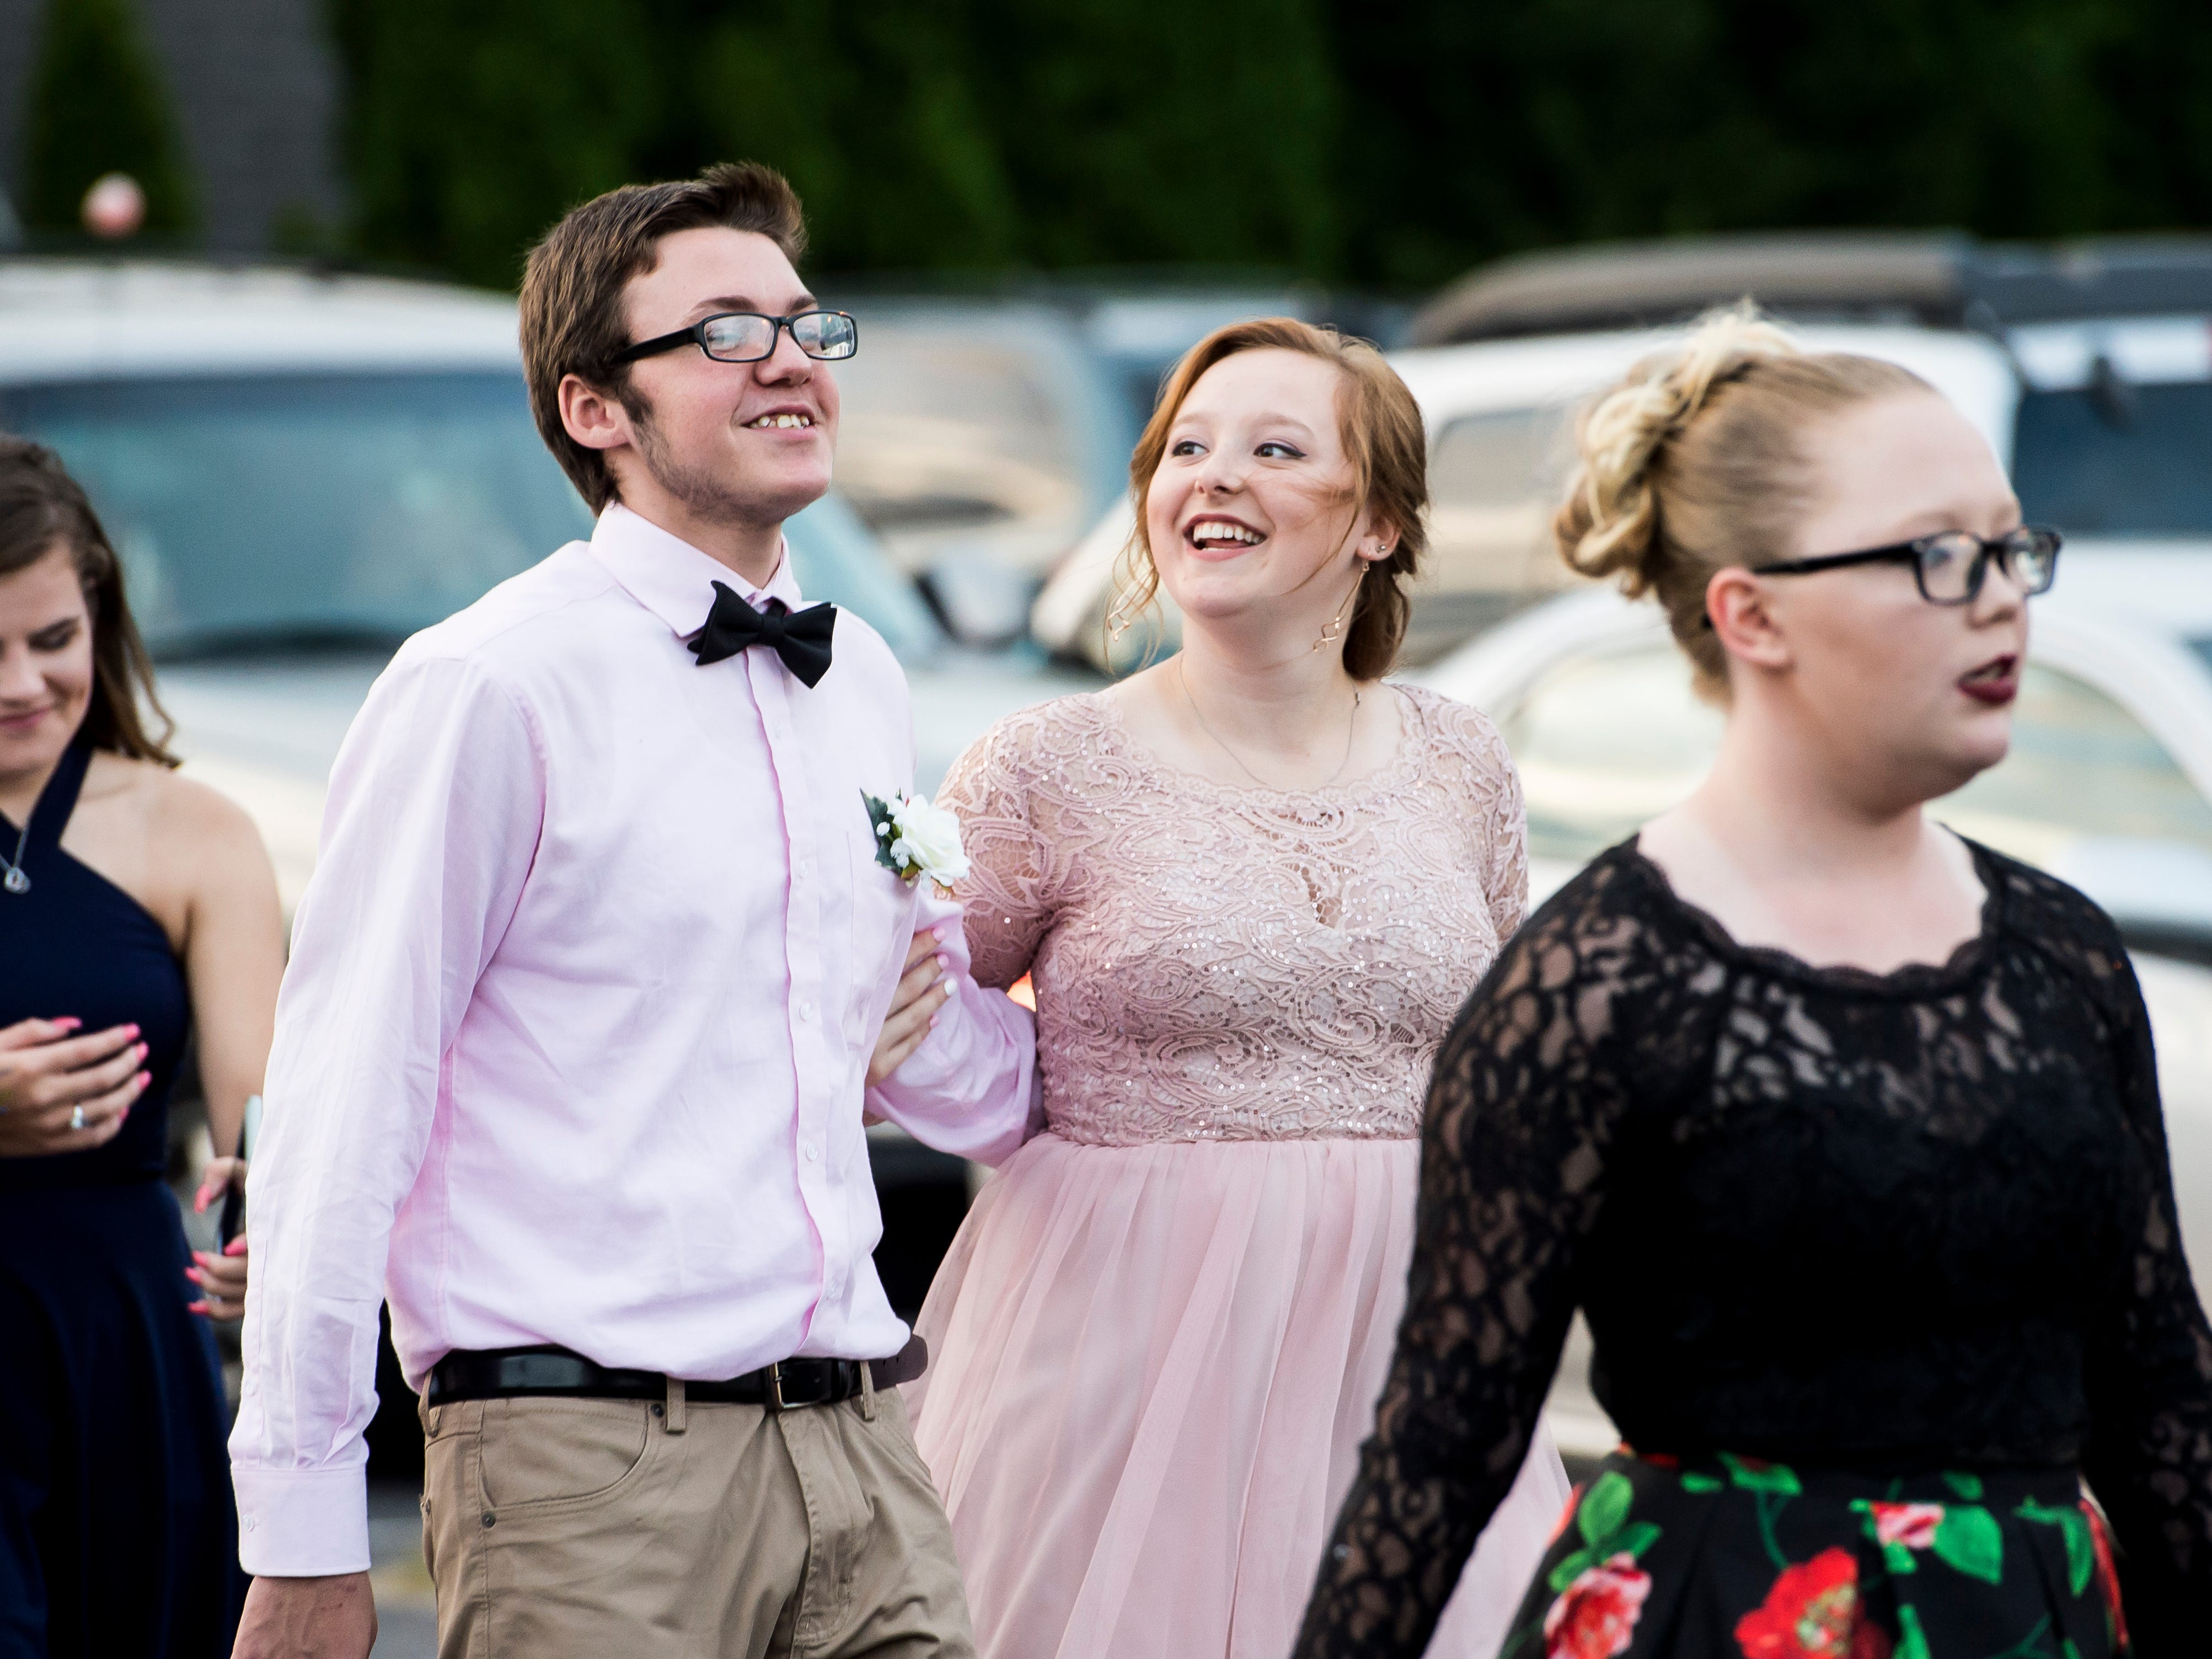 Students arrive at Hanover High School's homecoming dance on Saturday, September 15, 2018.